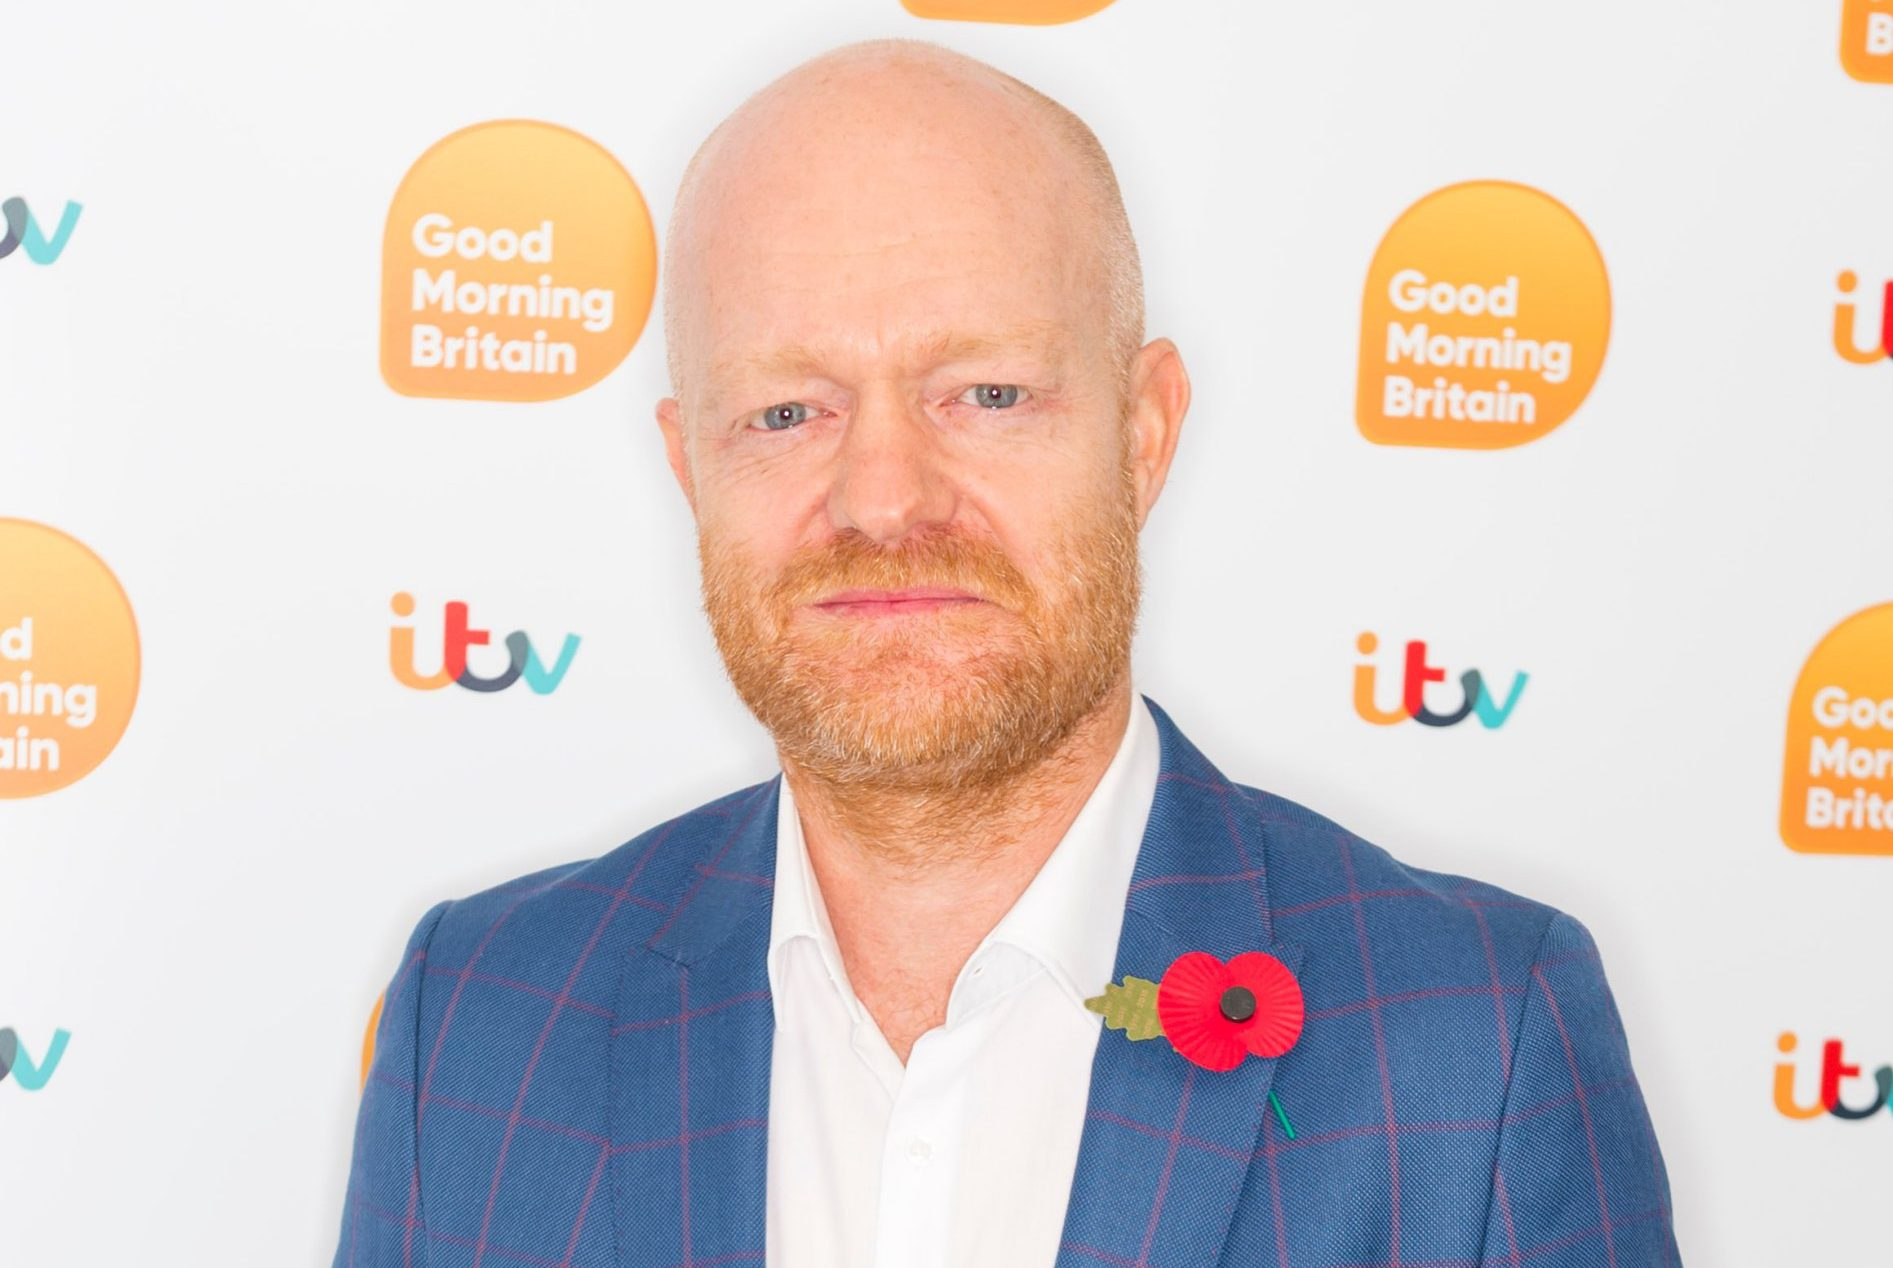 EastEnders' Jake Wood reveals adorable friendship with 7-year-old boy who was in care